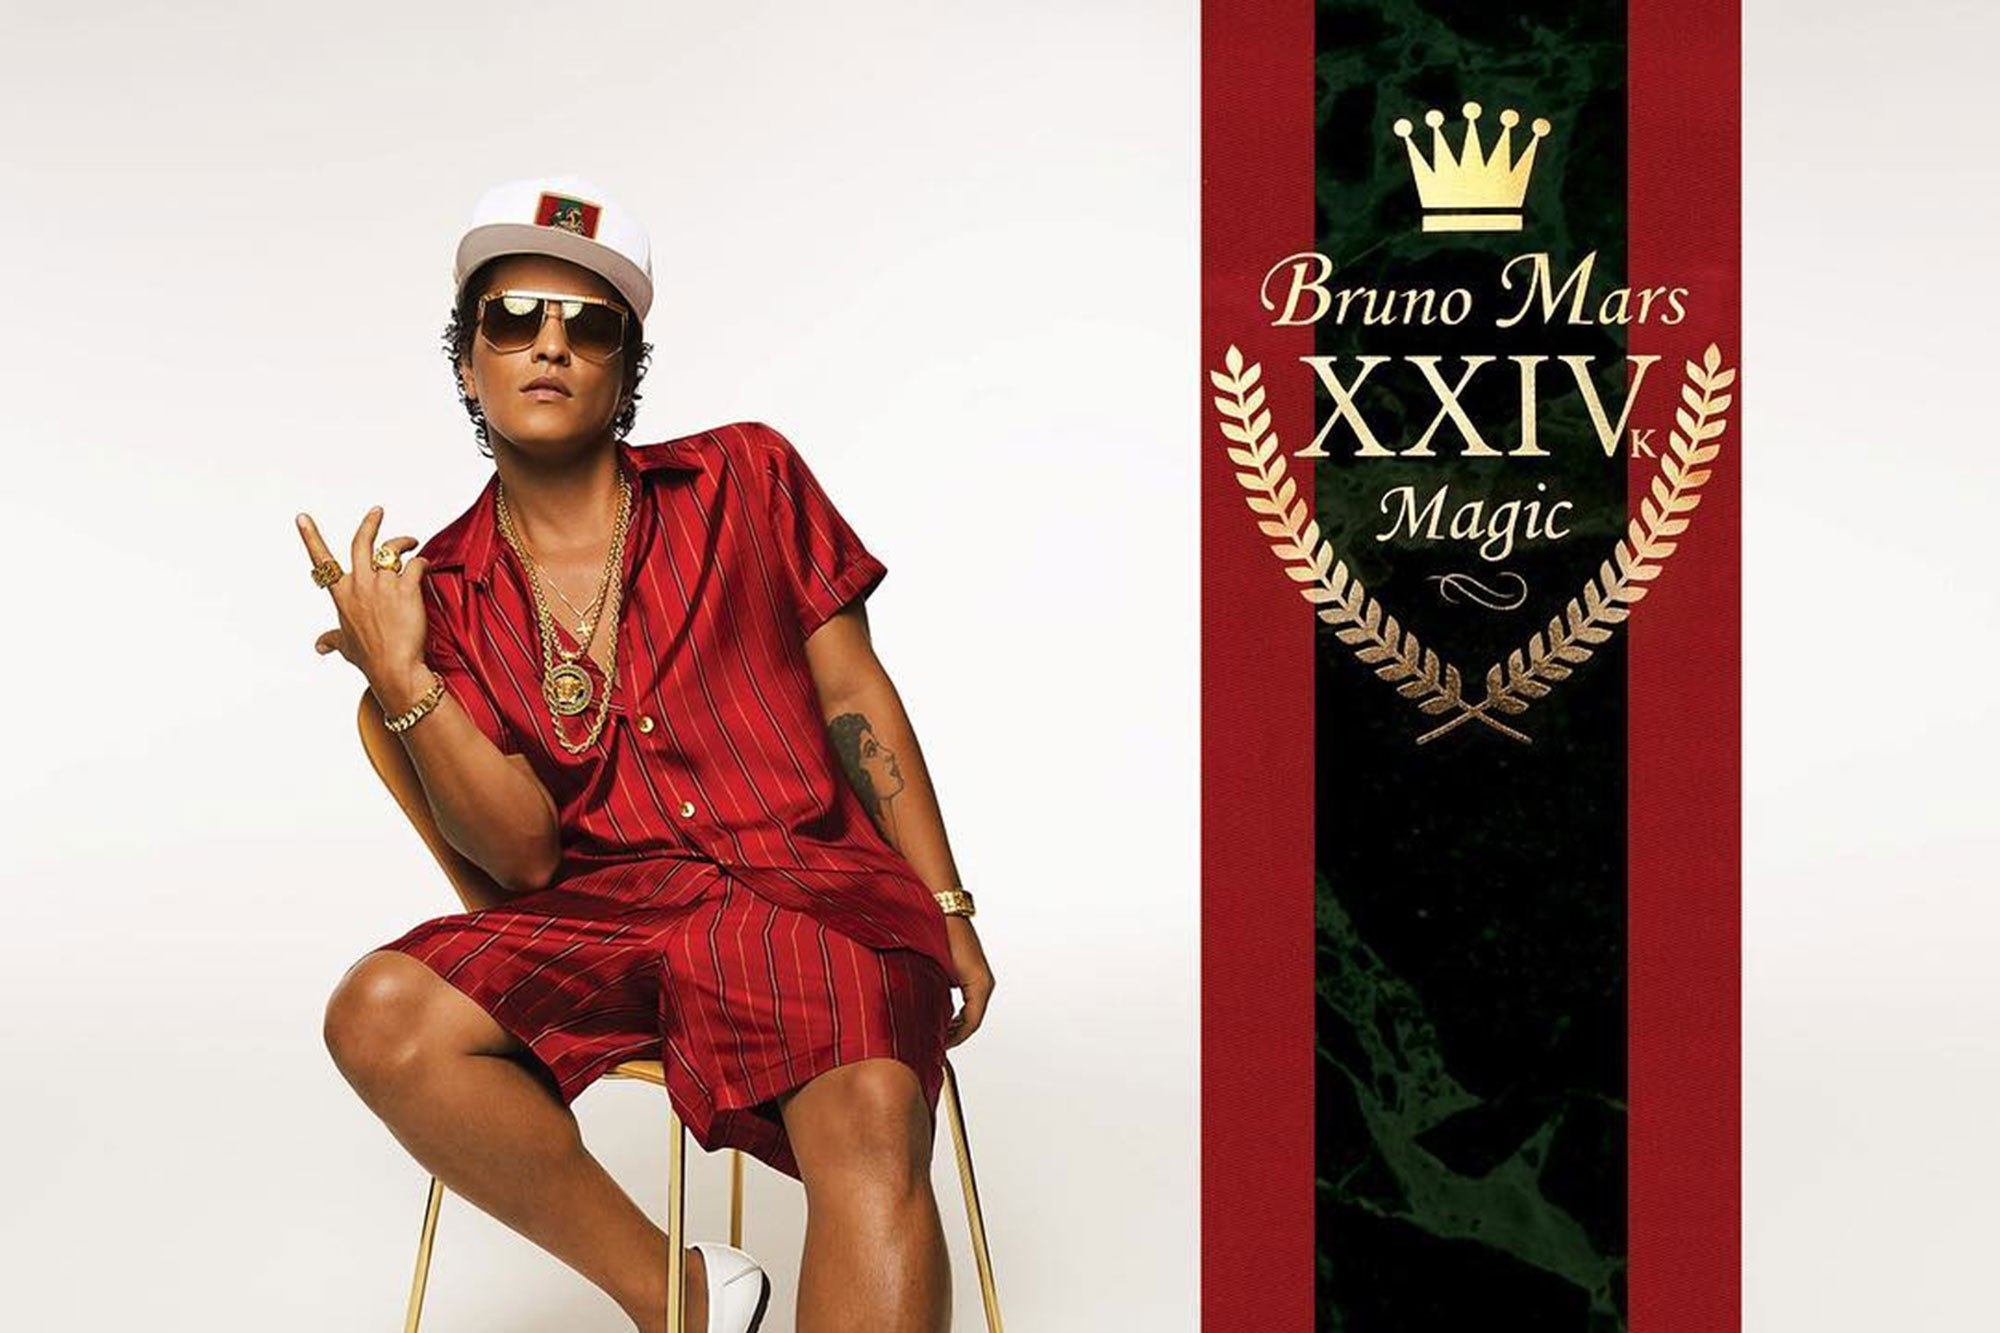 Bruno Mars Magic